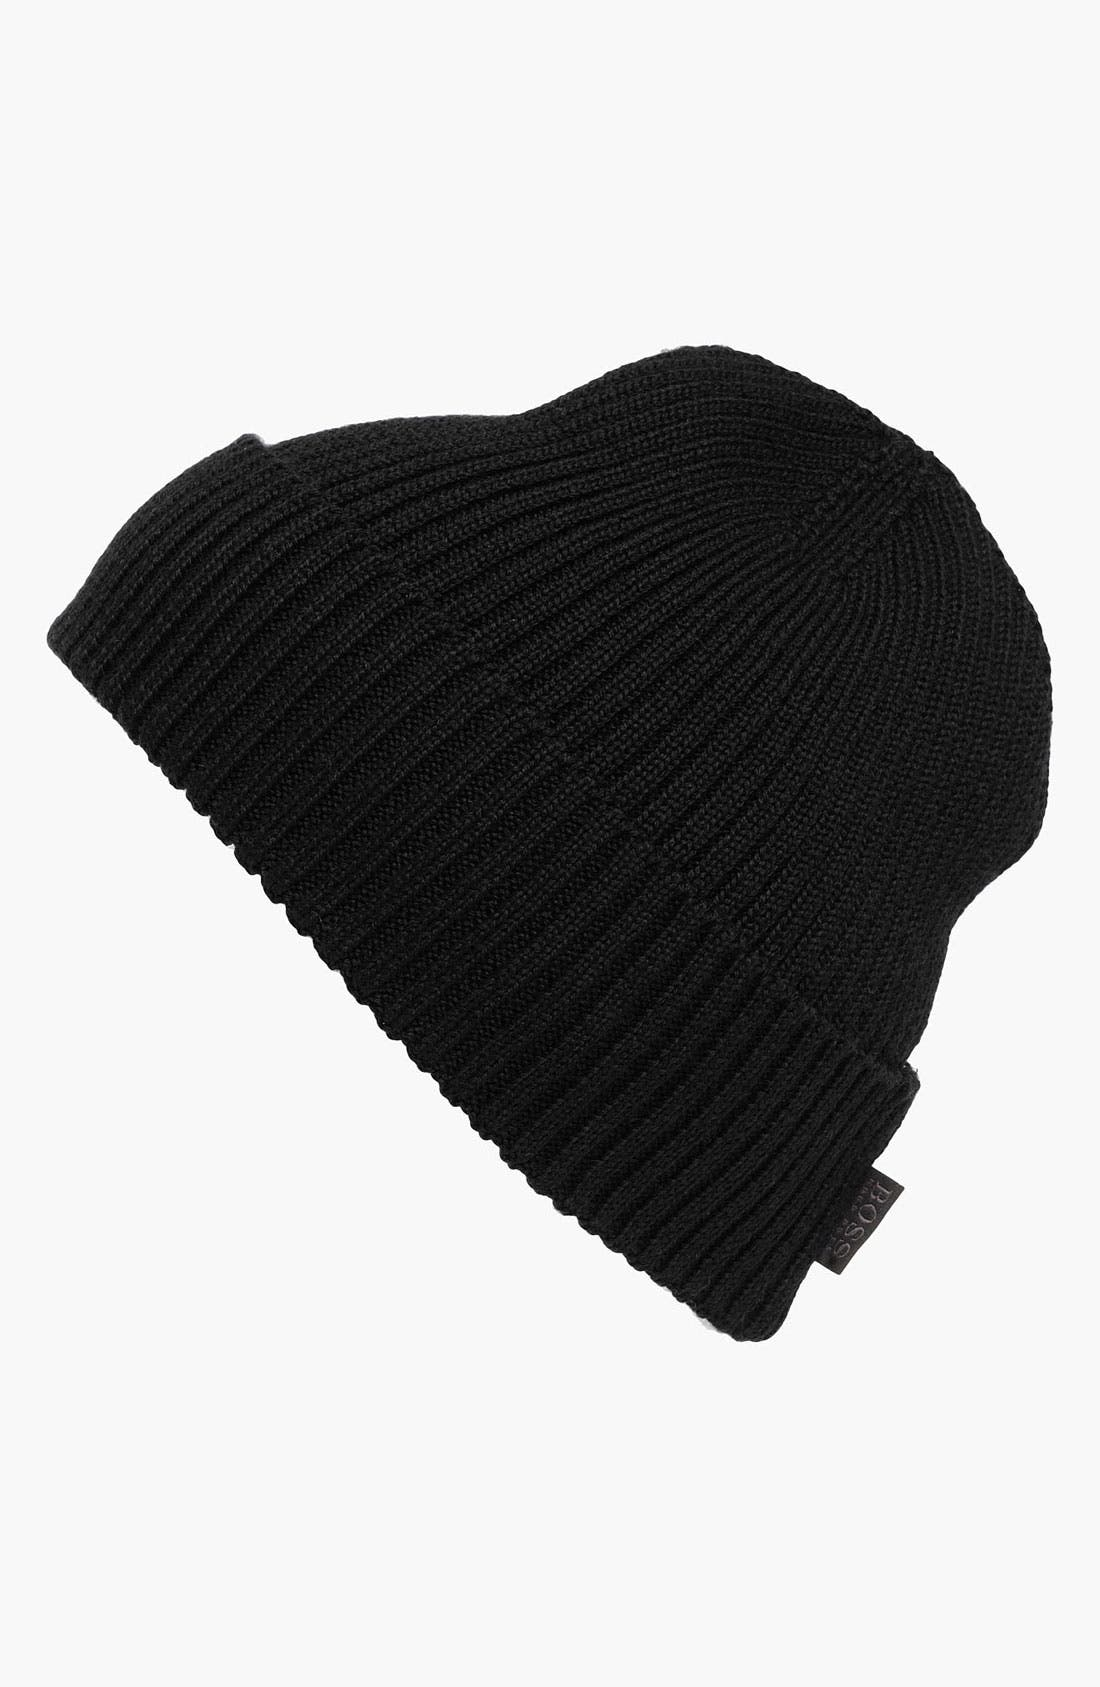 Alternate Image 1 Selected - BOSS Black 'Nattea' Wool Knit Cap